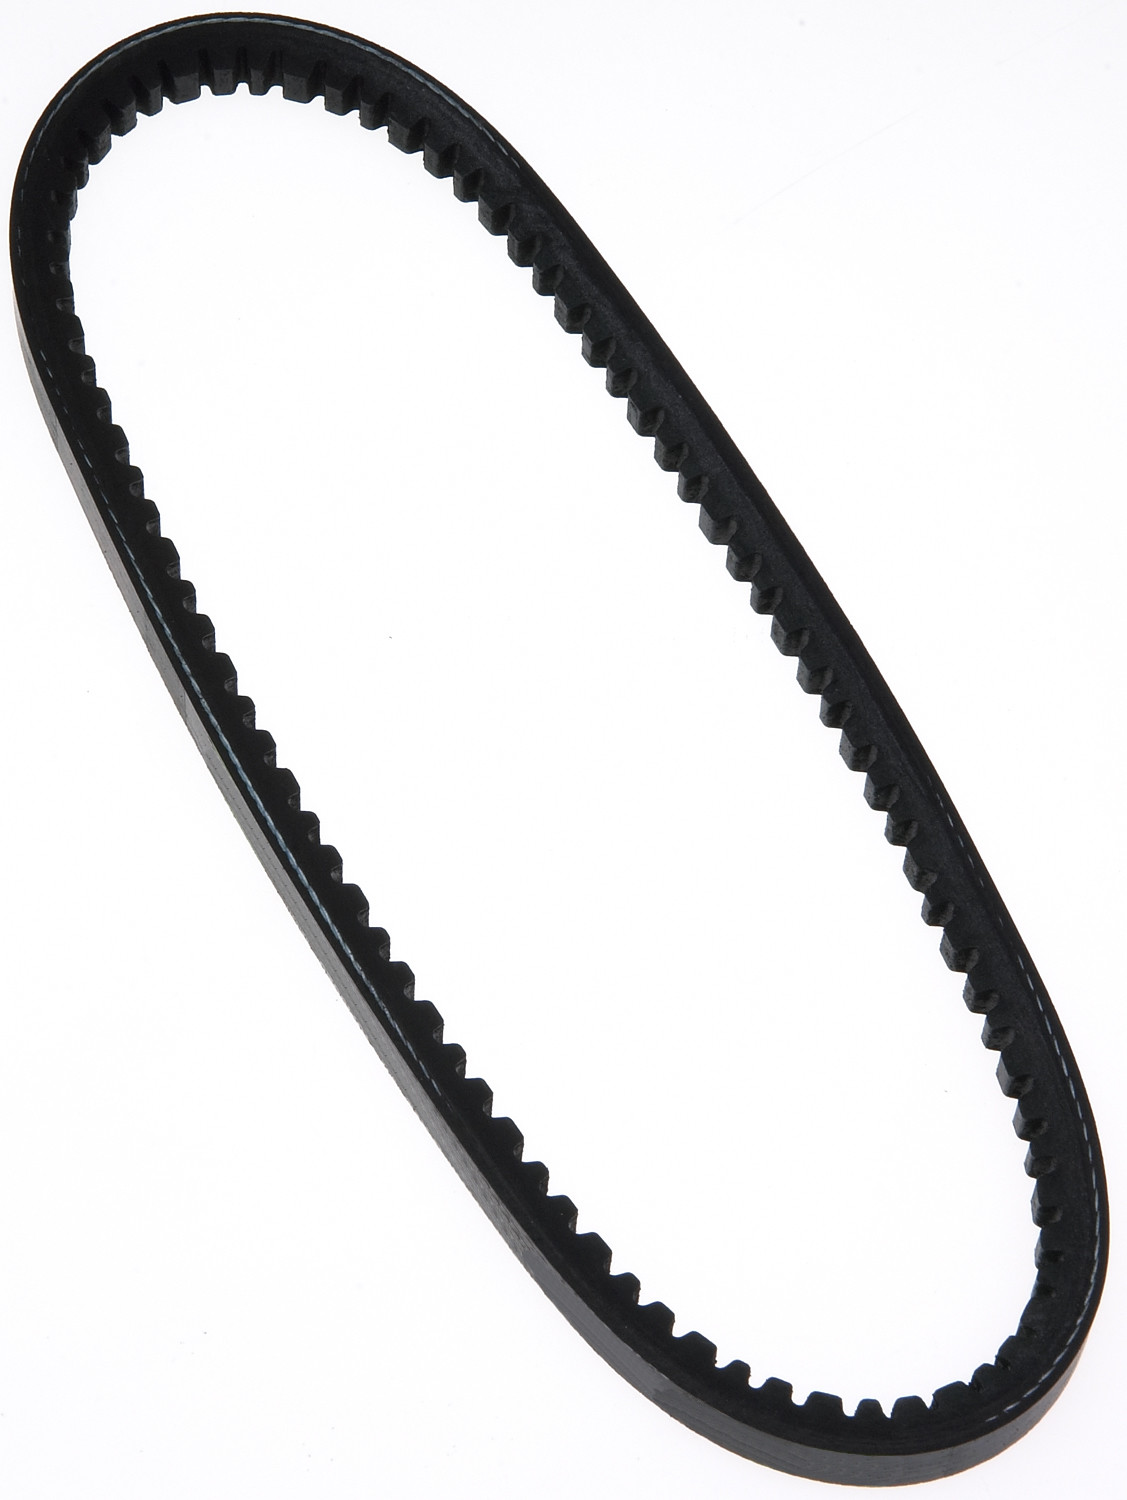 ROADMAX - High Capacity V-belt(standard) - RMX 17445AP